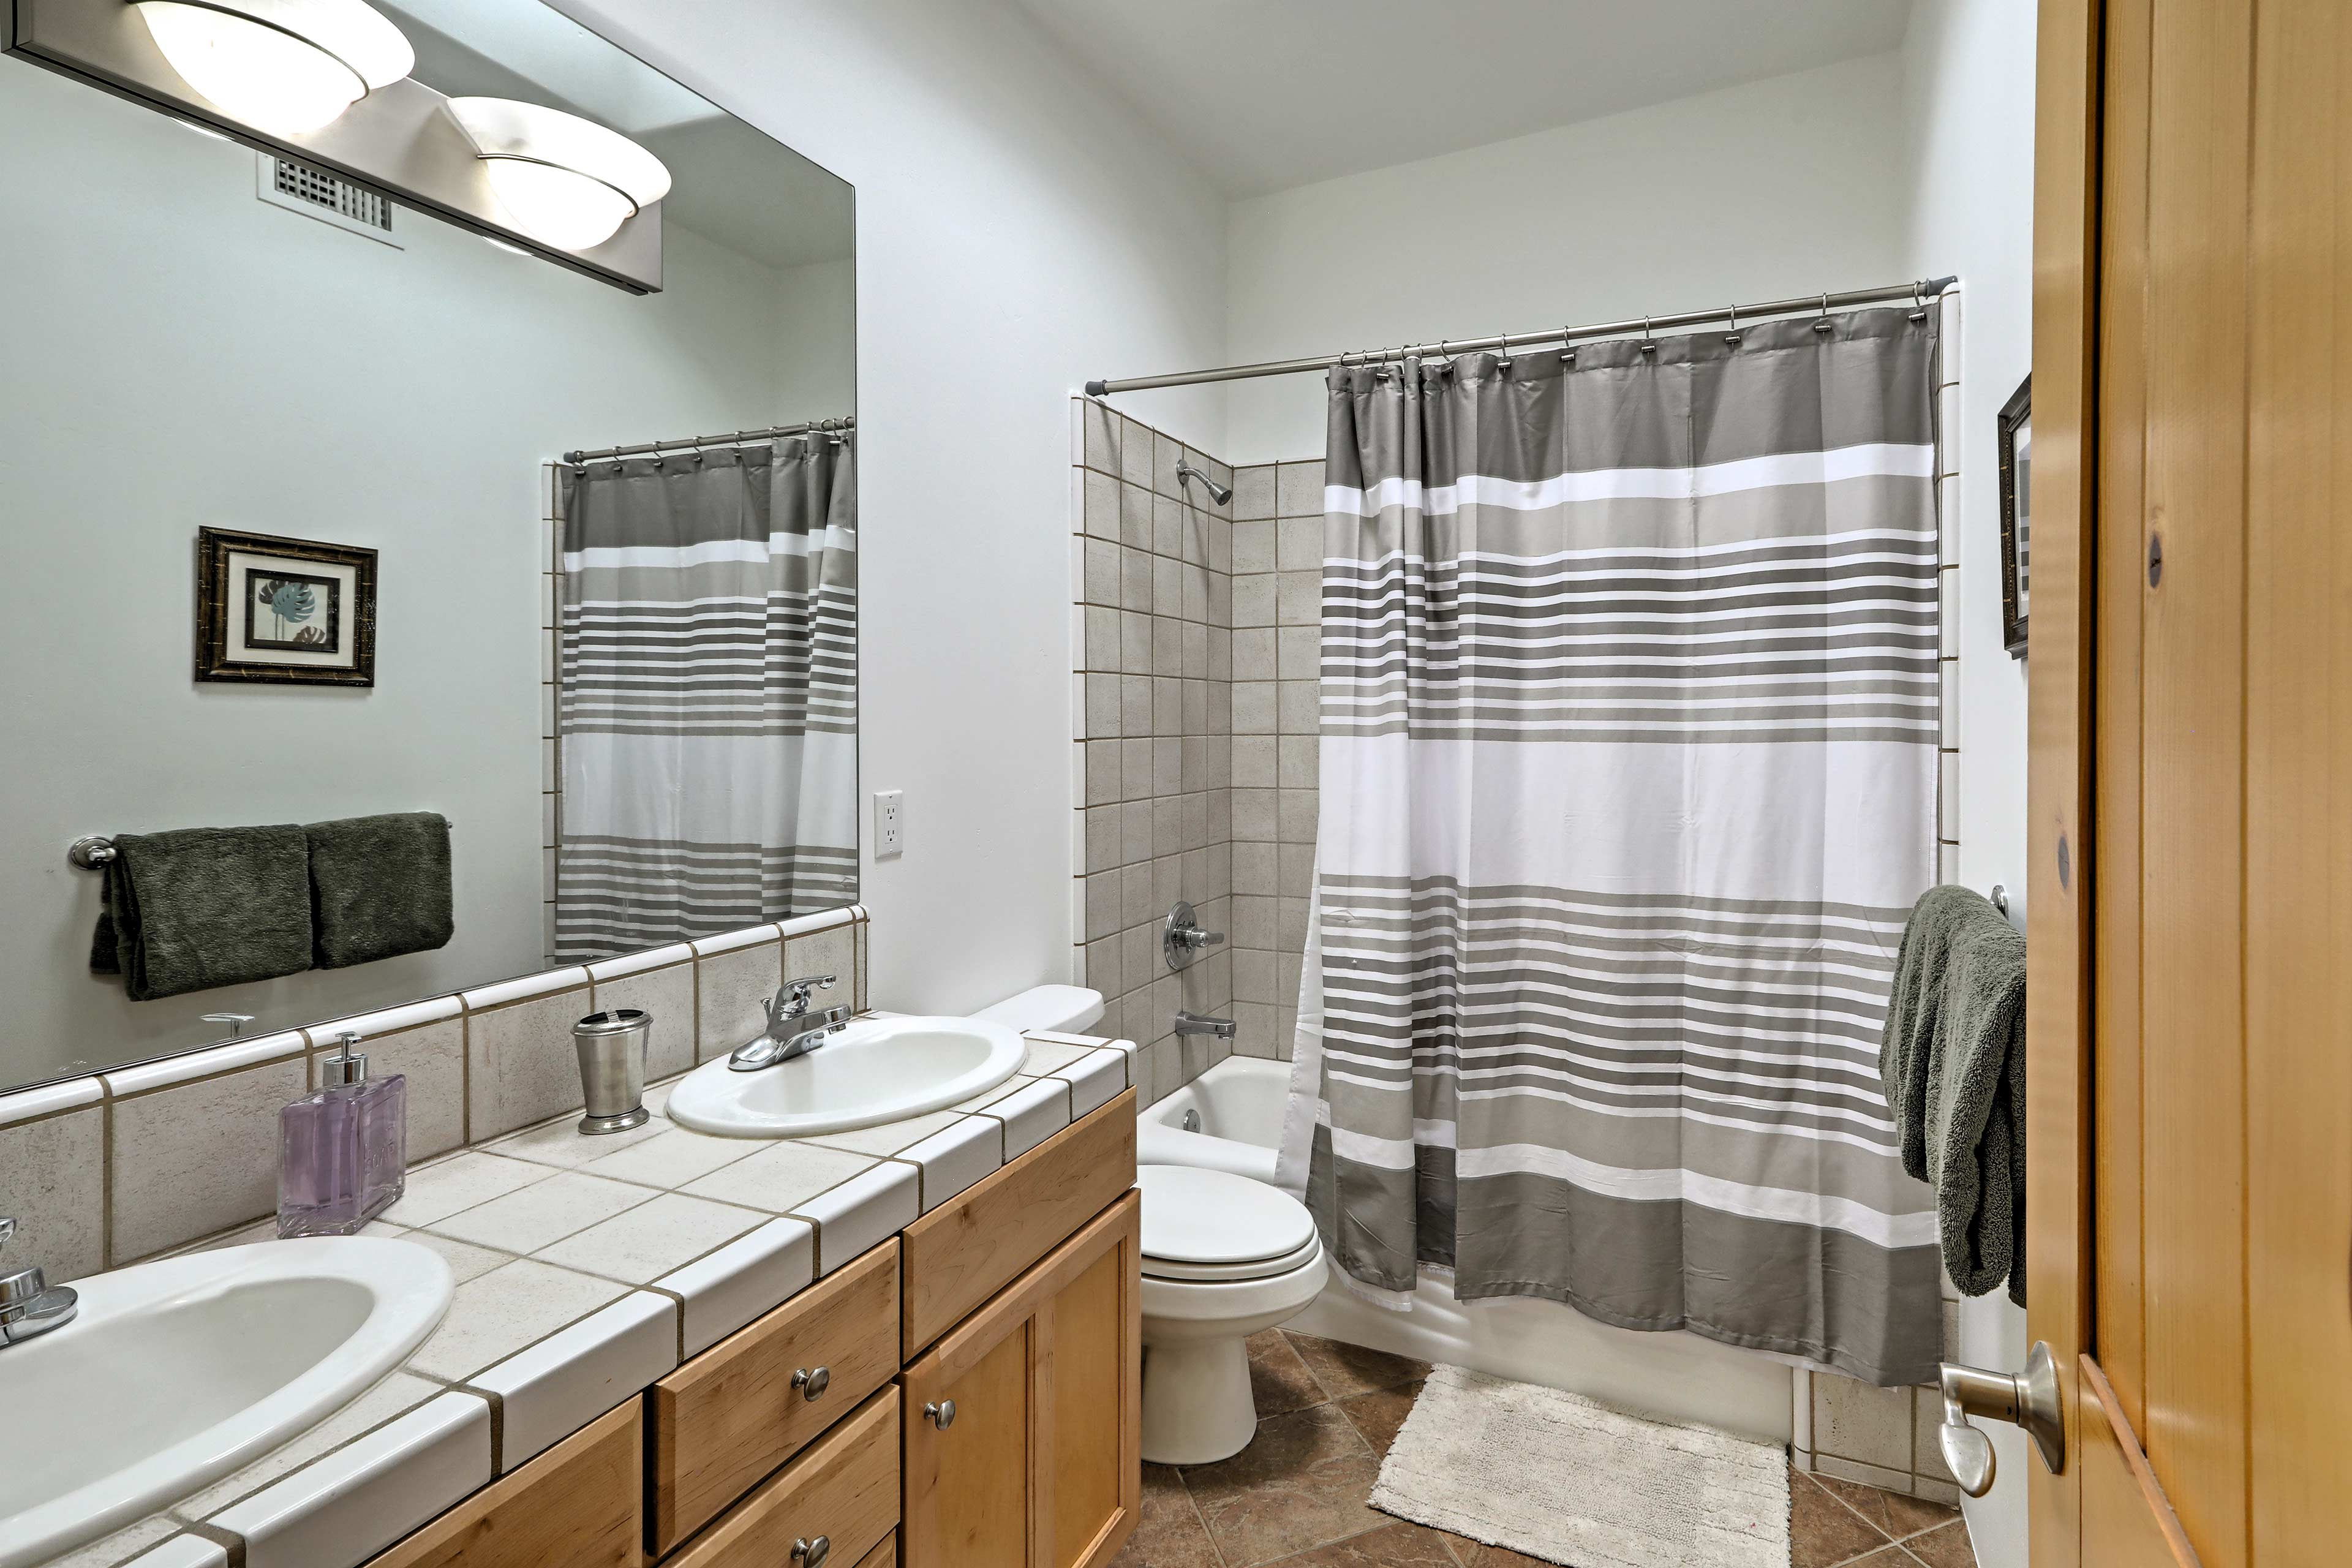 After a long day on the trails, refresh in this full bathroom.